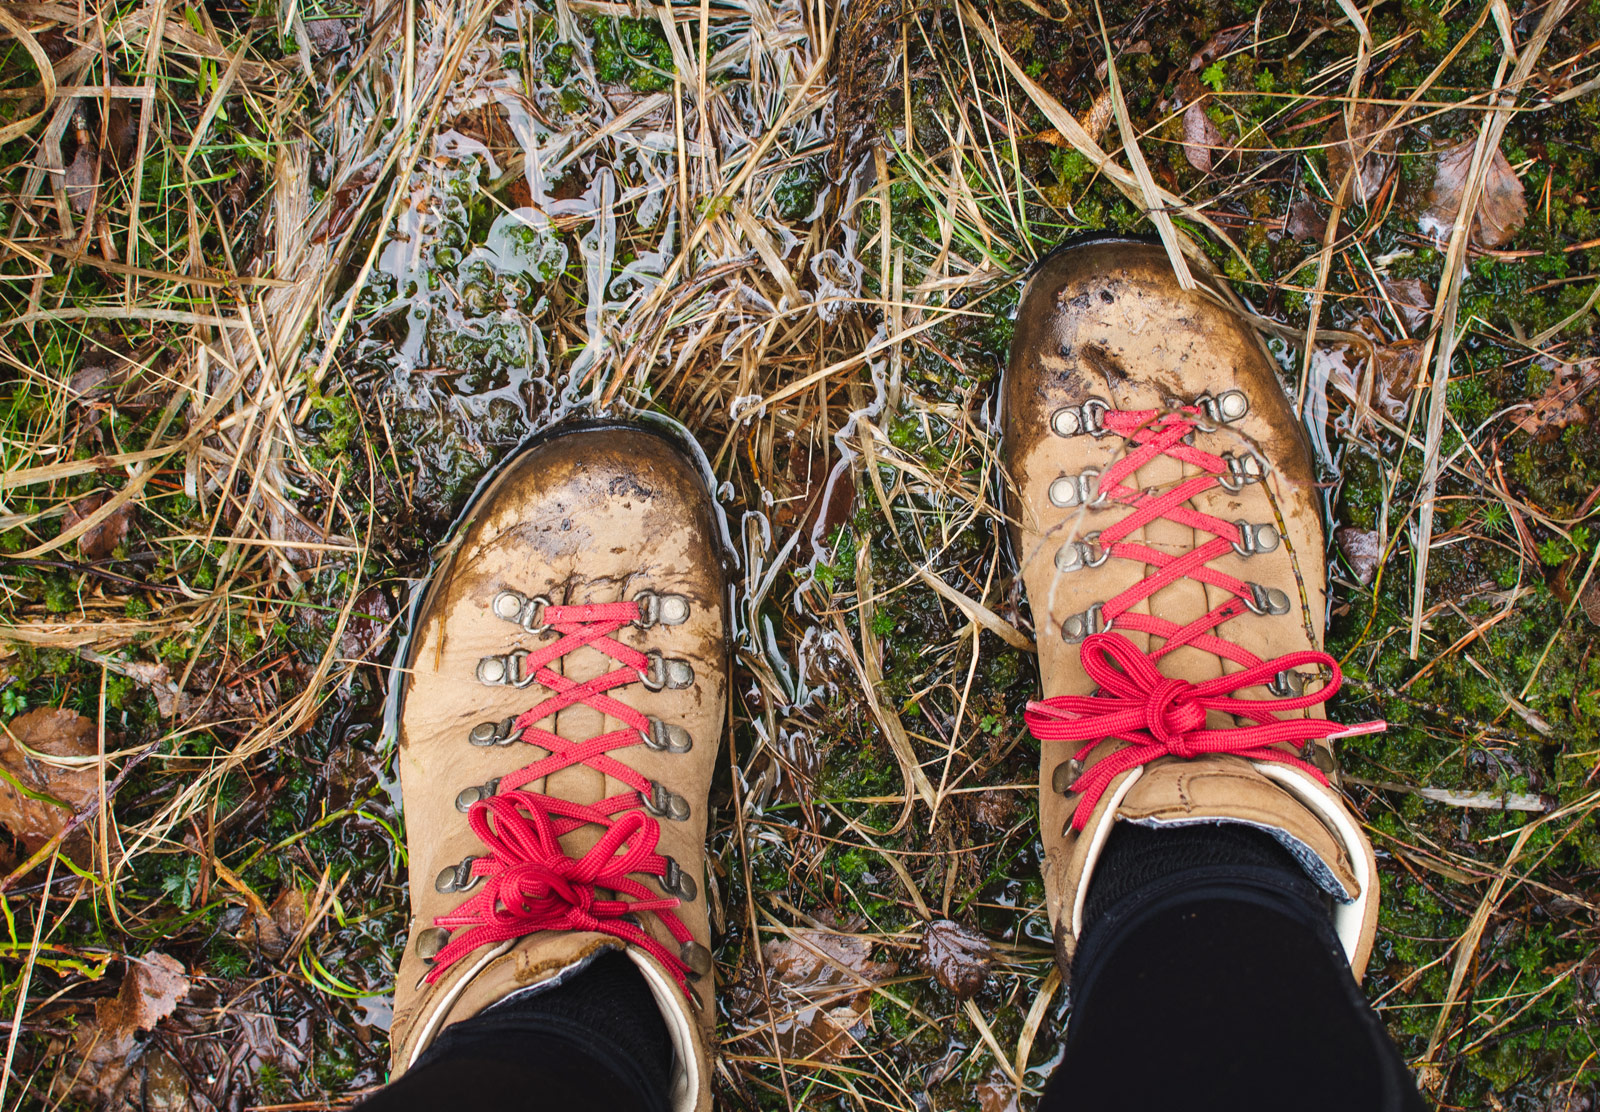 Hiking boots on boggy ground